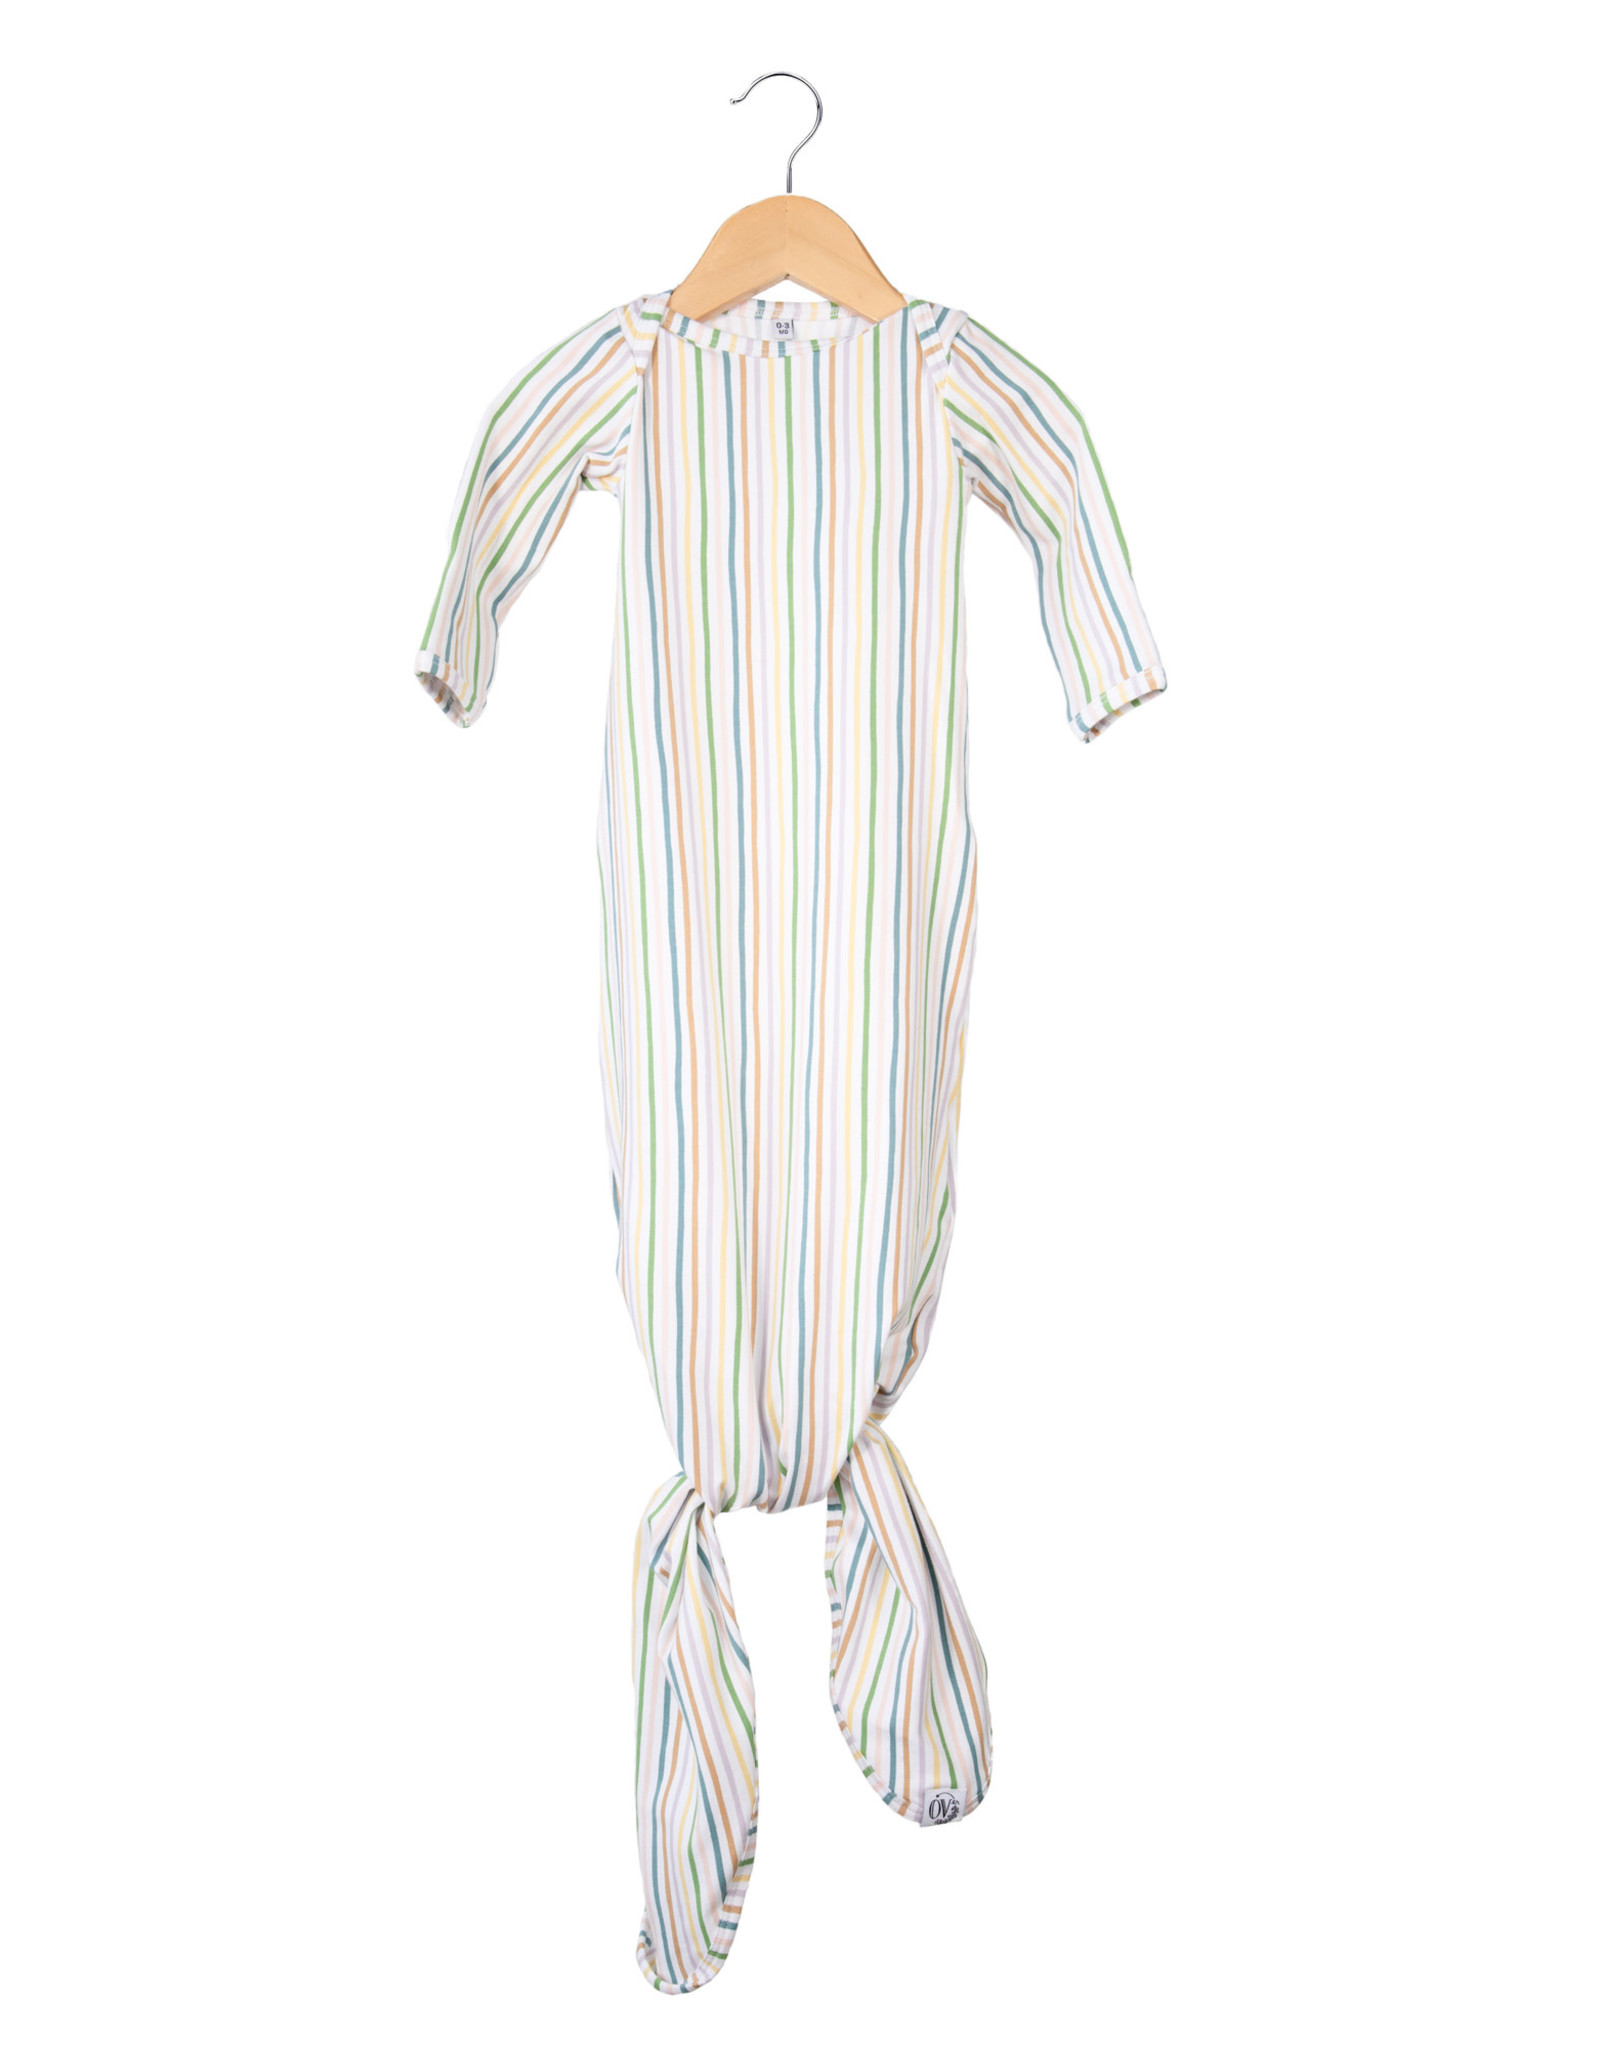 The Over Company The OVer Company Nodo Gown - Promise 0-3M